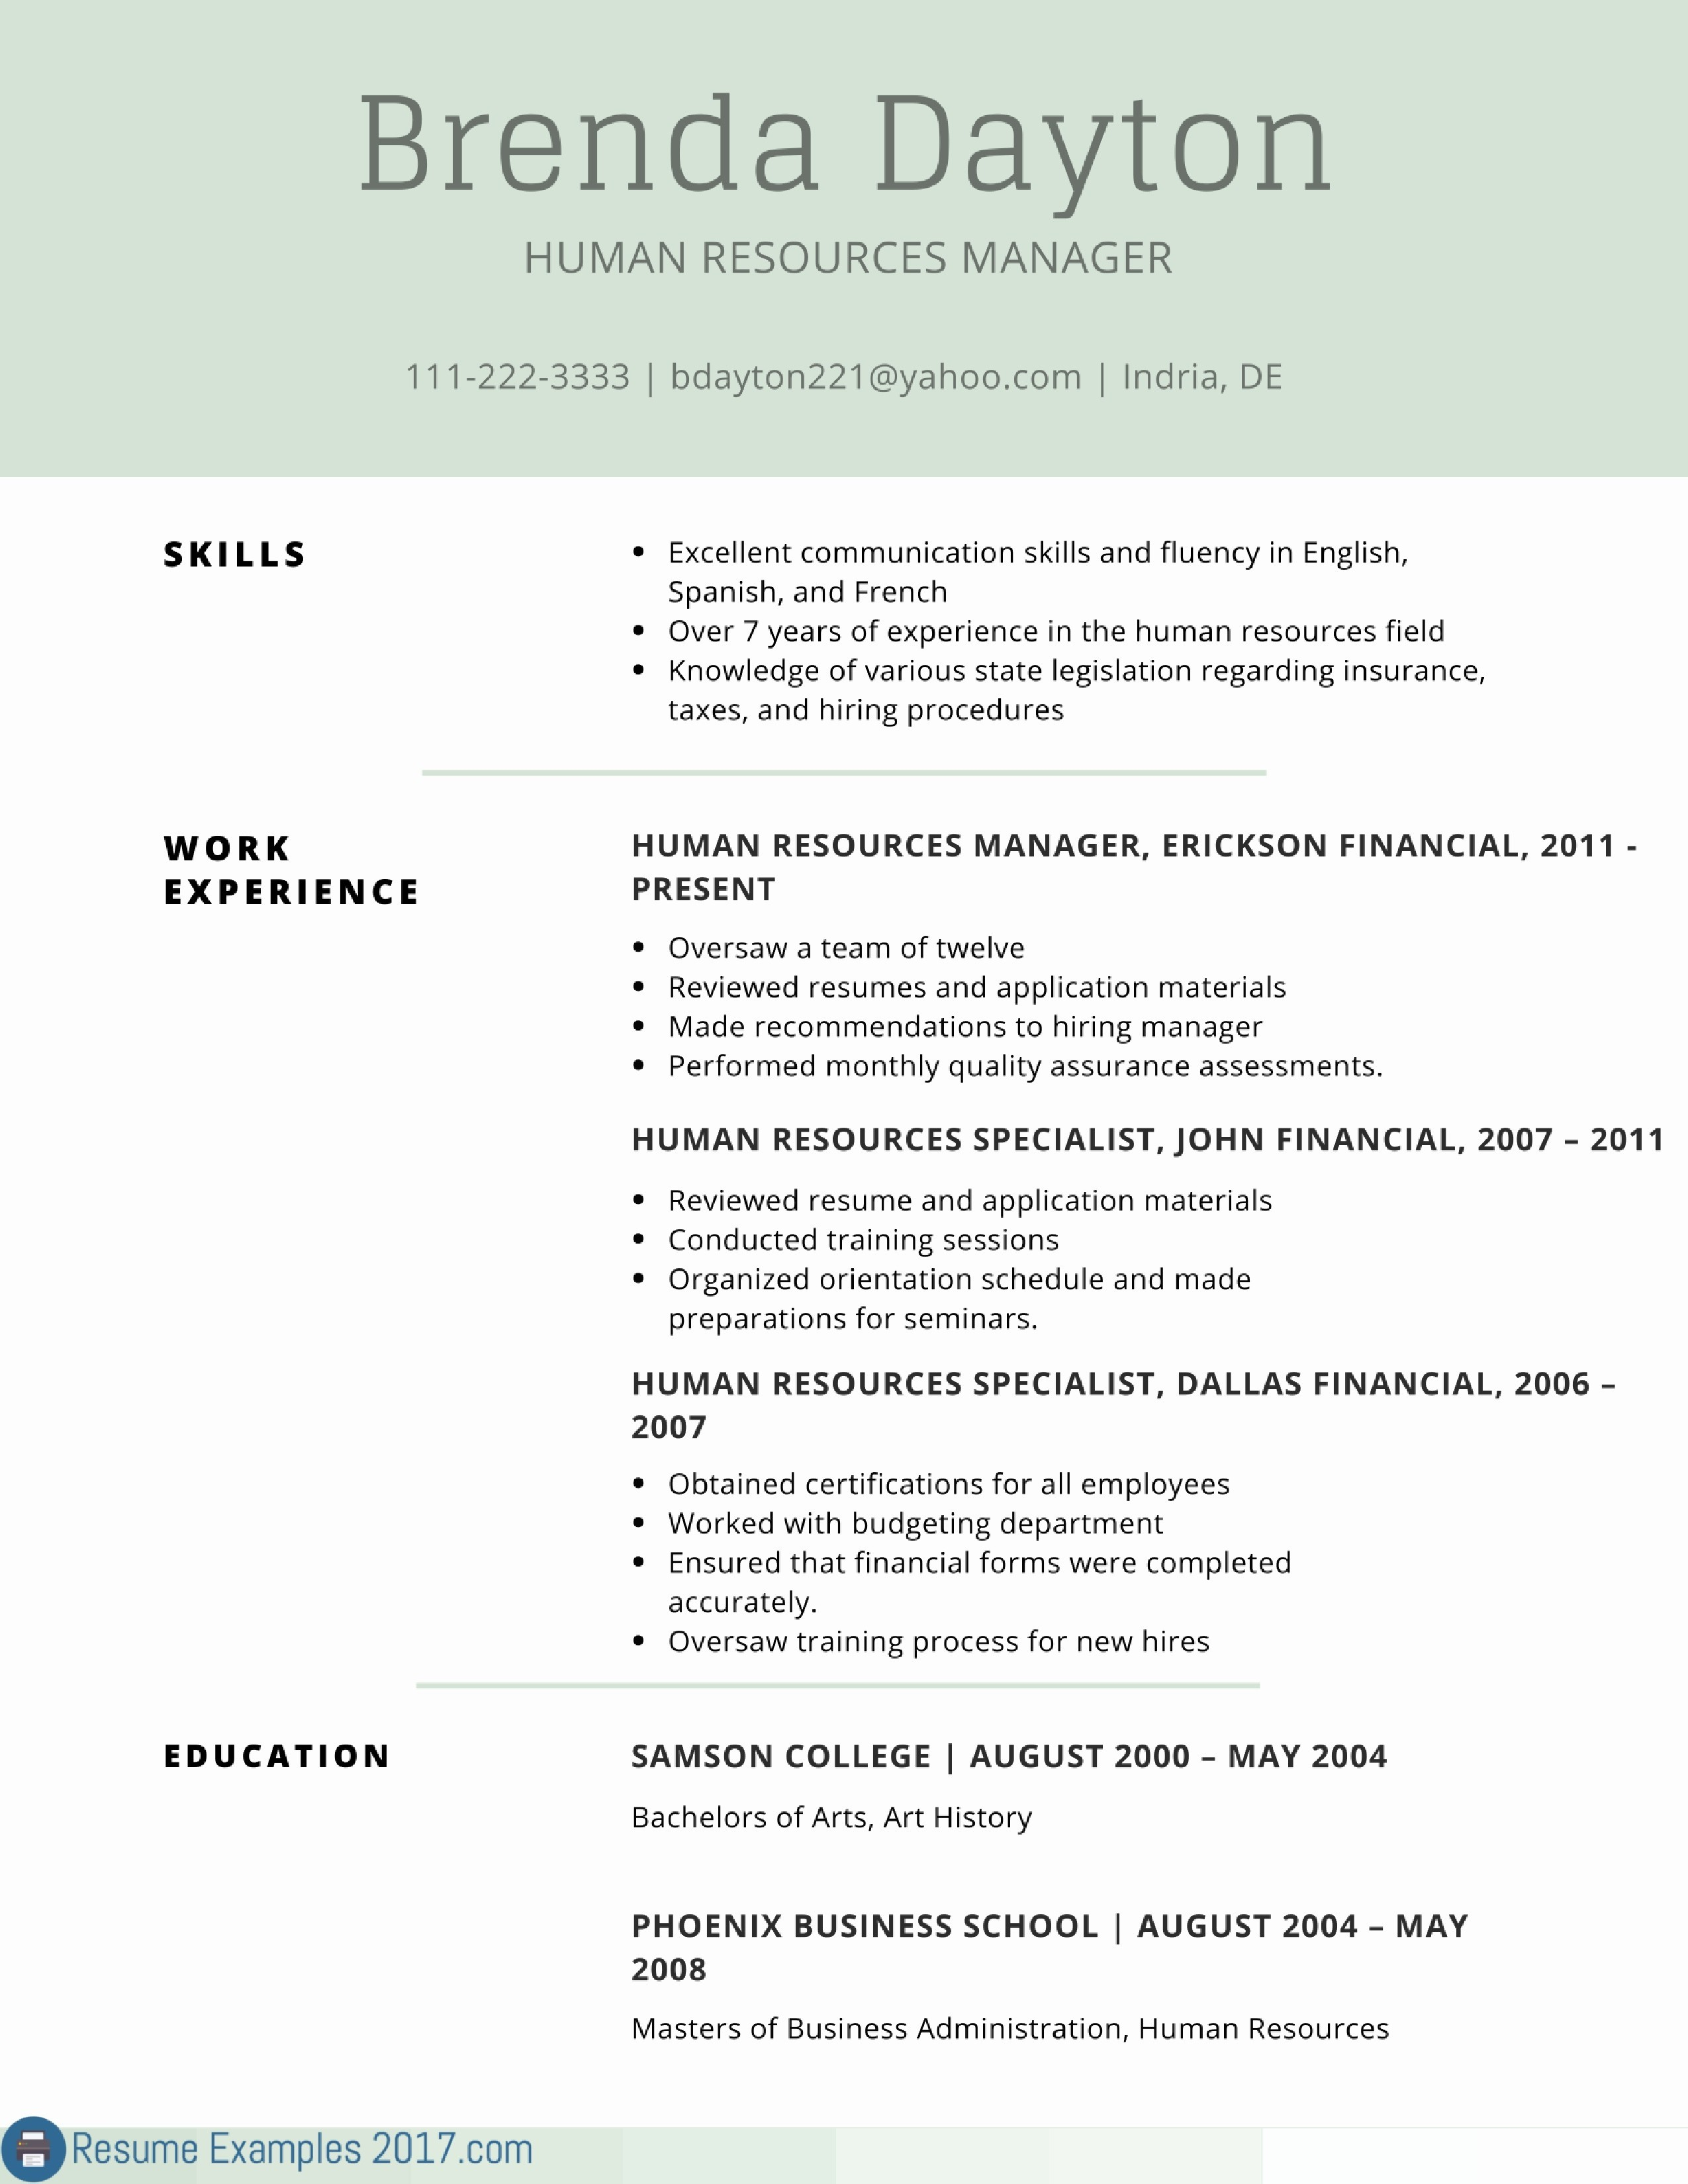 resume examples online Collection-Example Resume Summary Unique Fresh New Resume Sample Best Resume Cover Luxury formatted Resume 0d 6-o